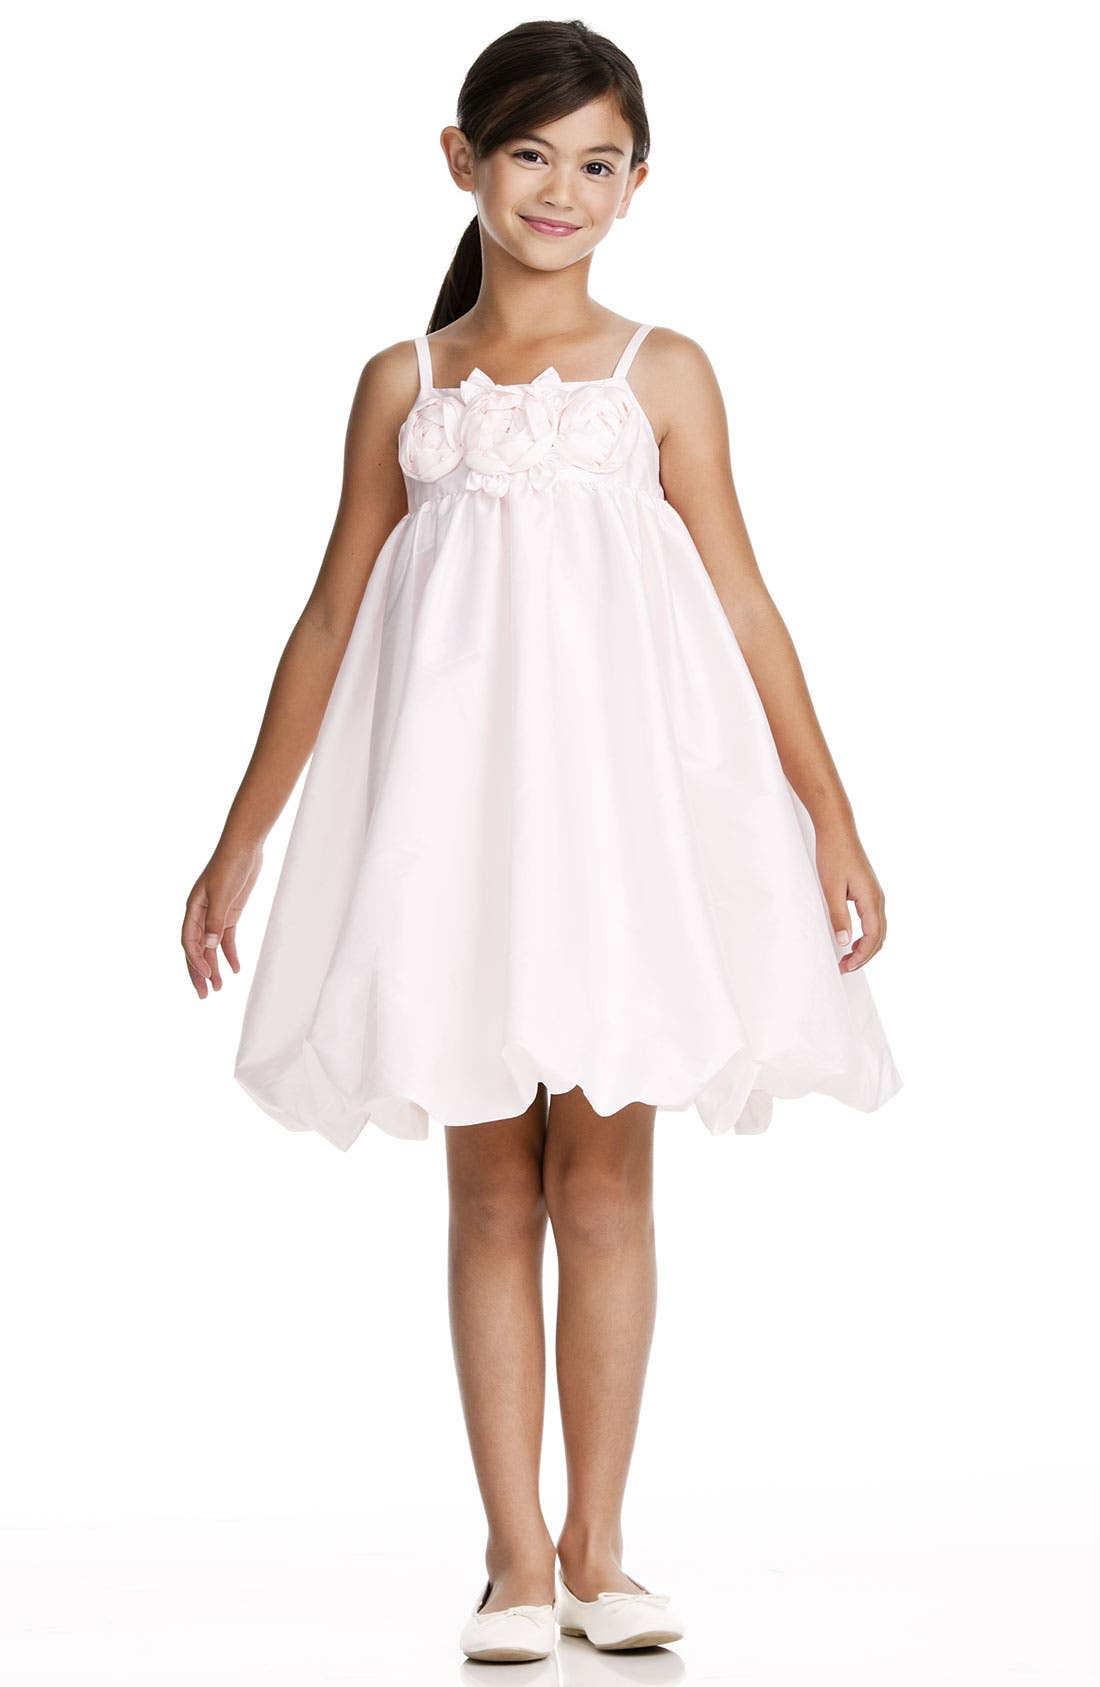 Alternate Image 1 Selected - Us Angels Taffeta Rosette Bubble Dress (Toddler)